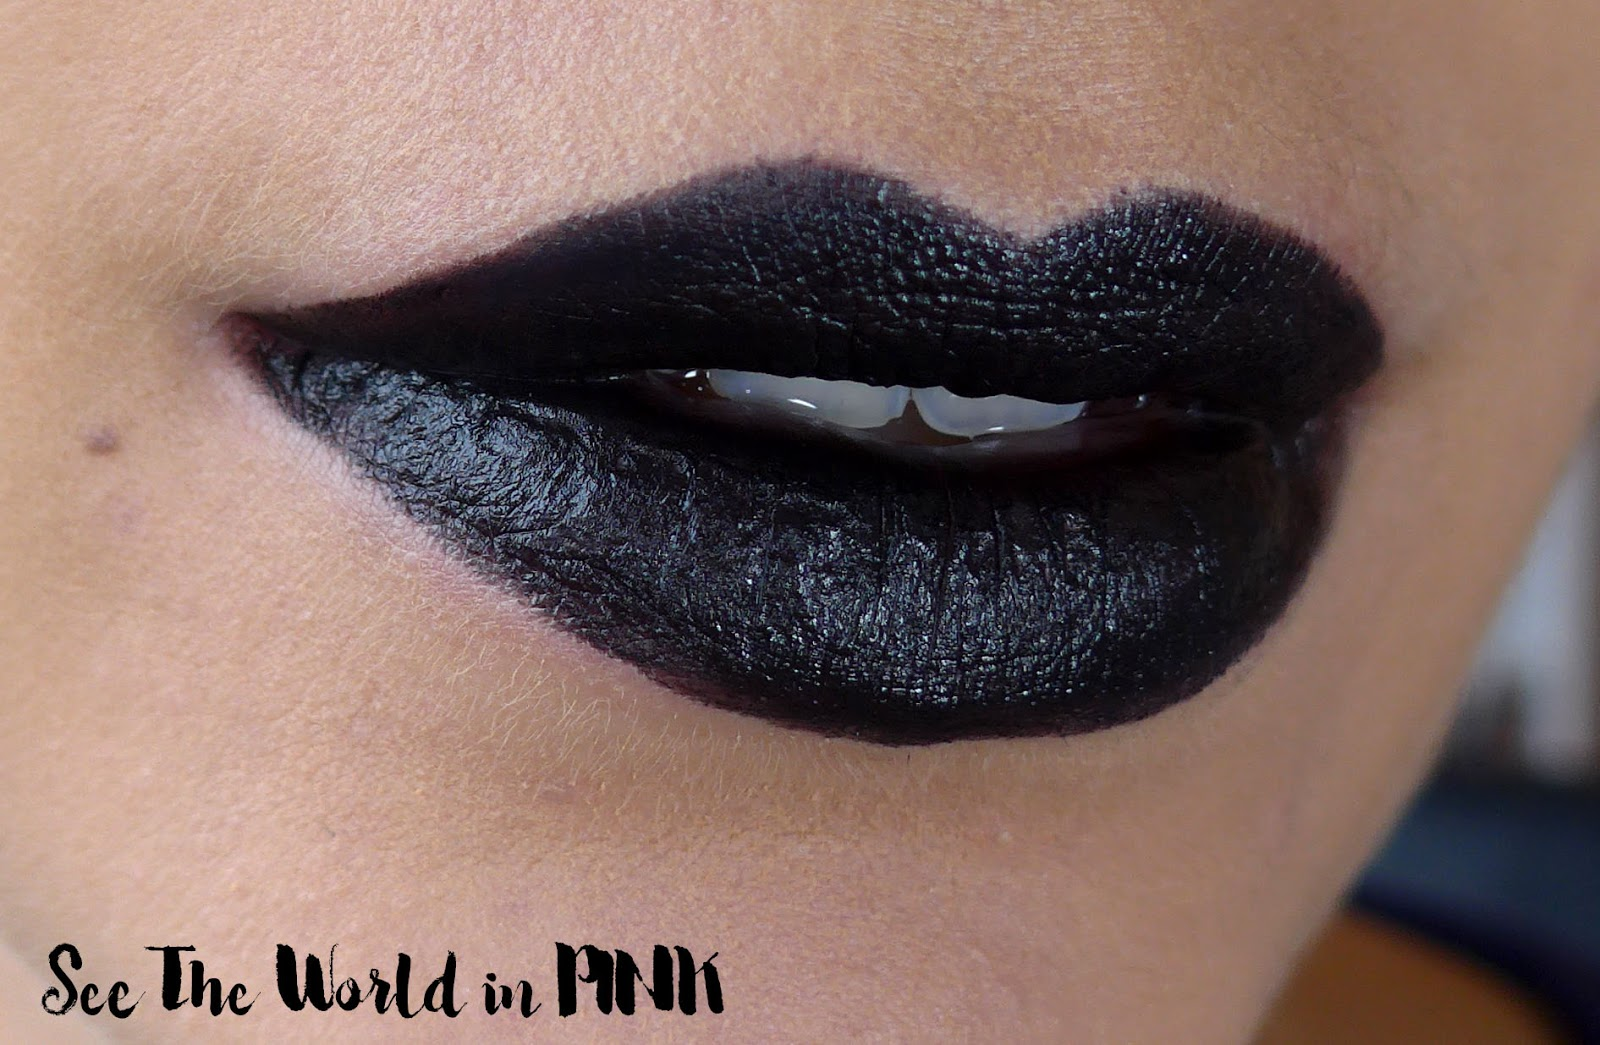 Black Lipstick Trend - ColourPop Bull Chic Lippie Stix